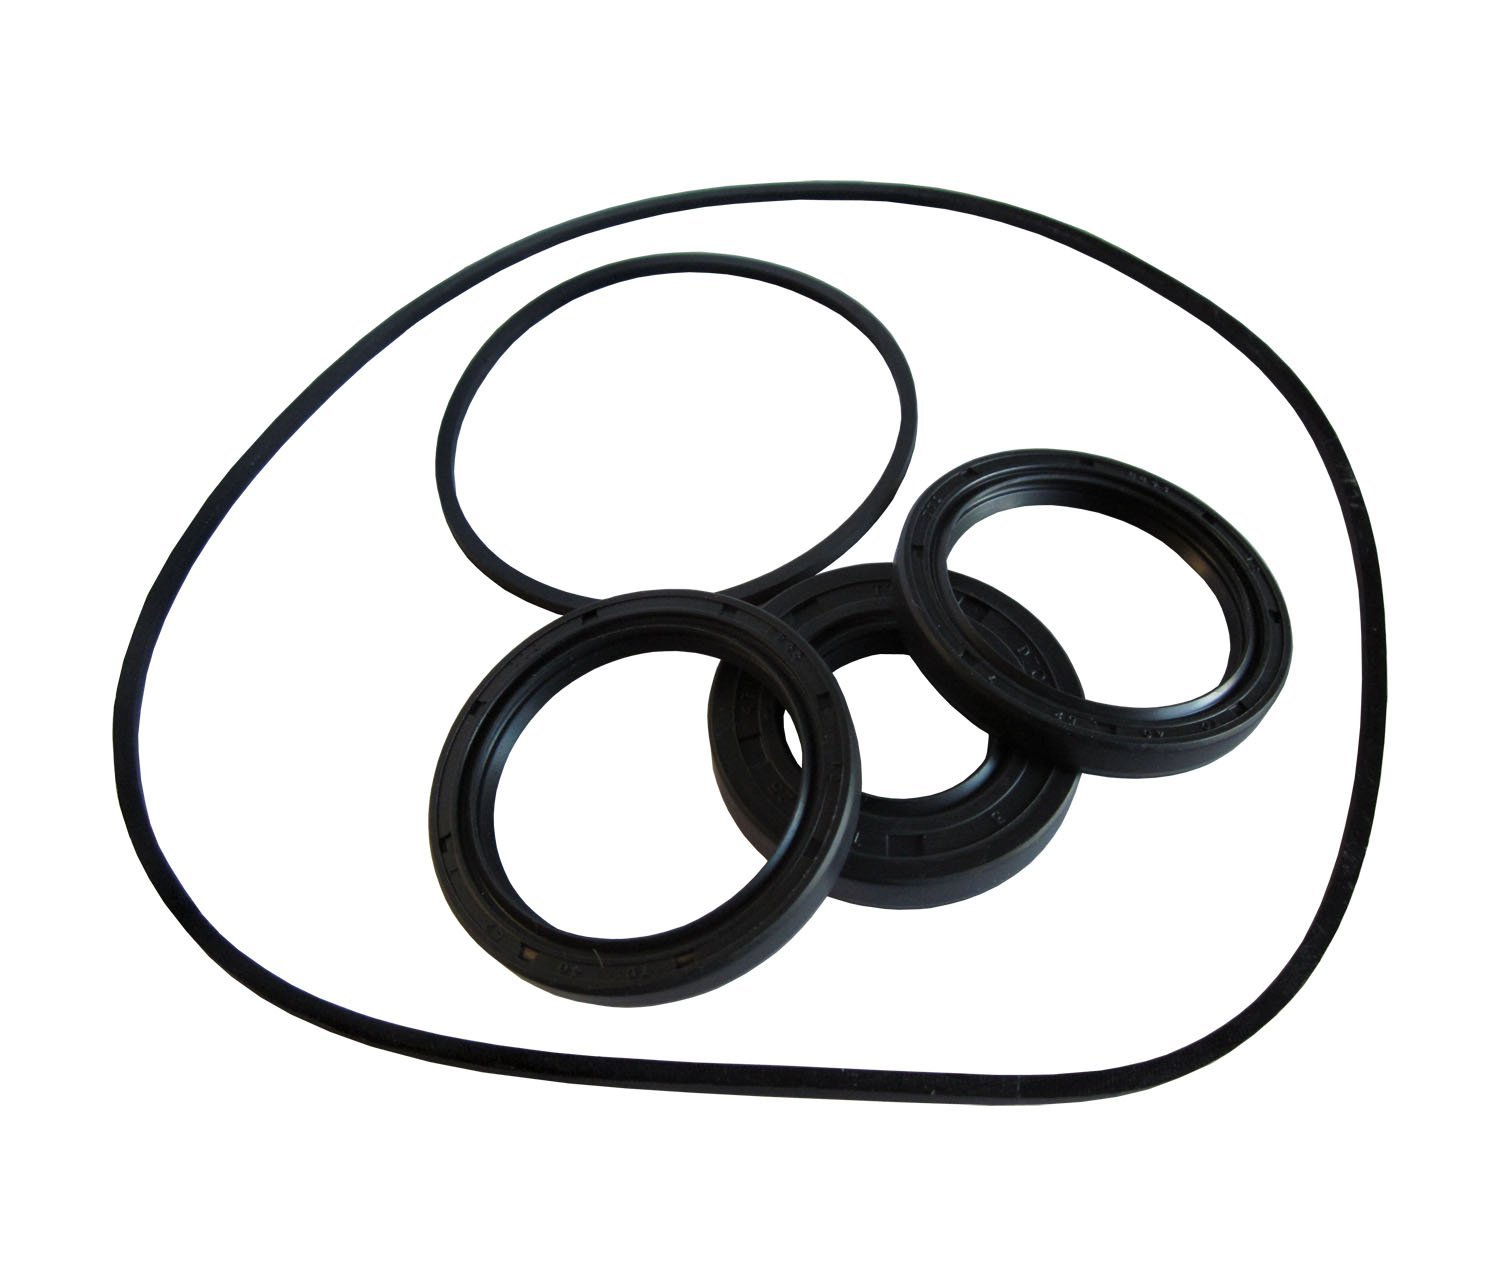 Polaris Sportsman 400 450 500 600 700 800 Front Differential Cover O-Rings Seals 3233956